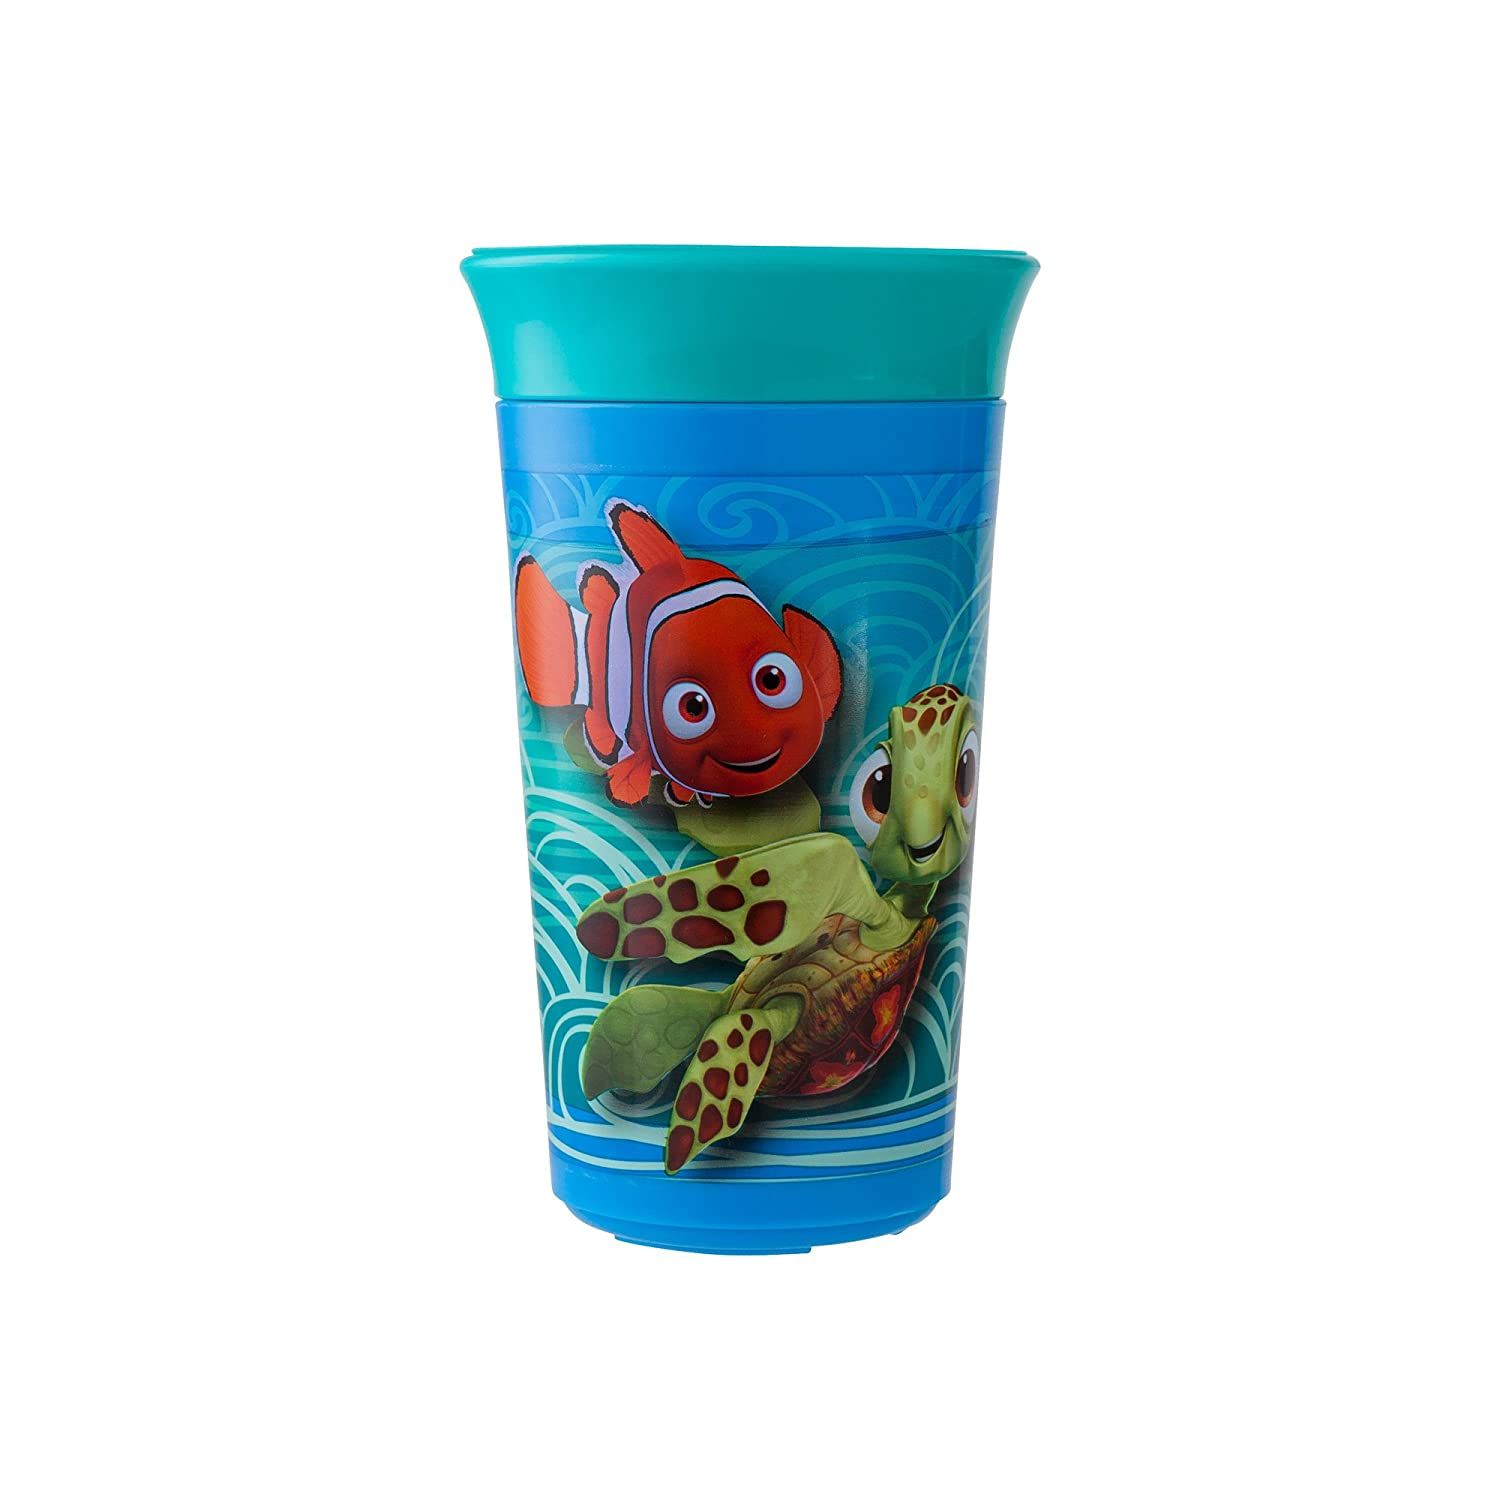 The First Years Disney/Pixar Simply Spoutless Cup, Finding Nemo, 9 Ounce by The First Years   B019JZOKIE